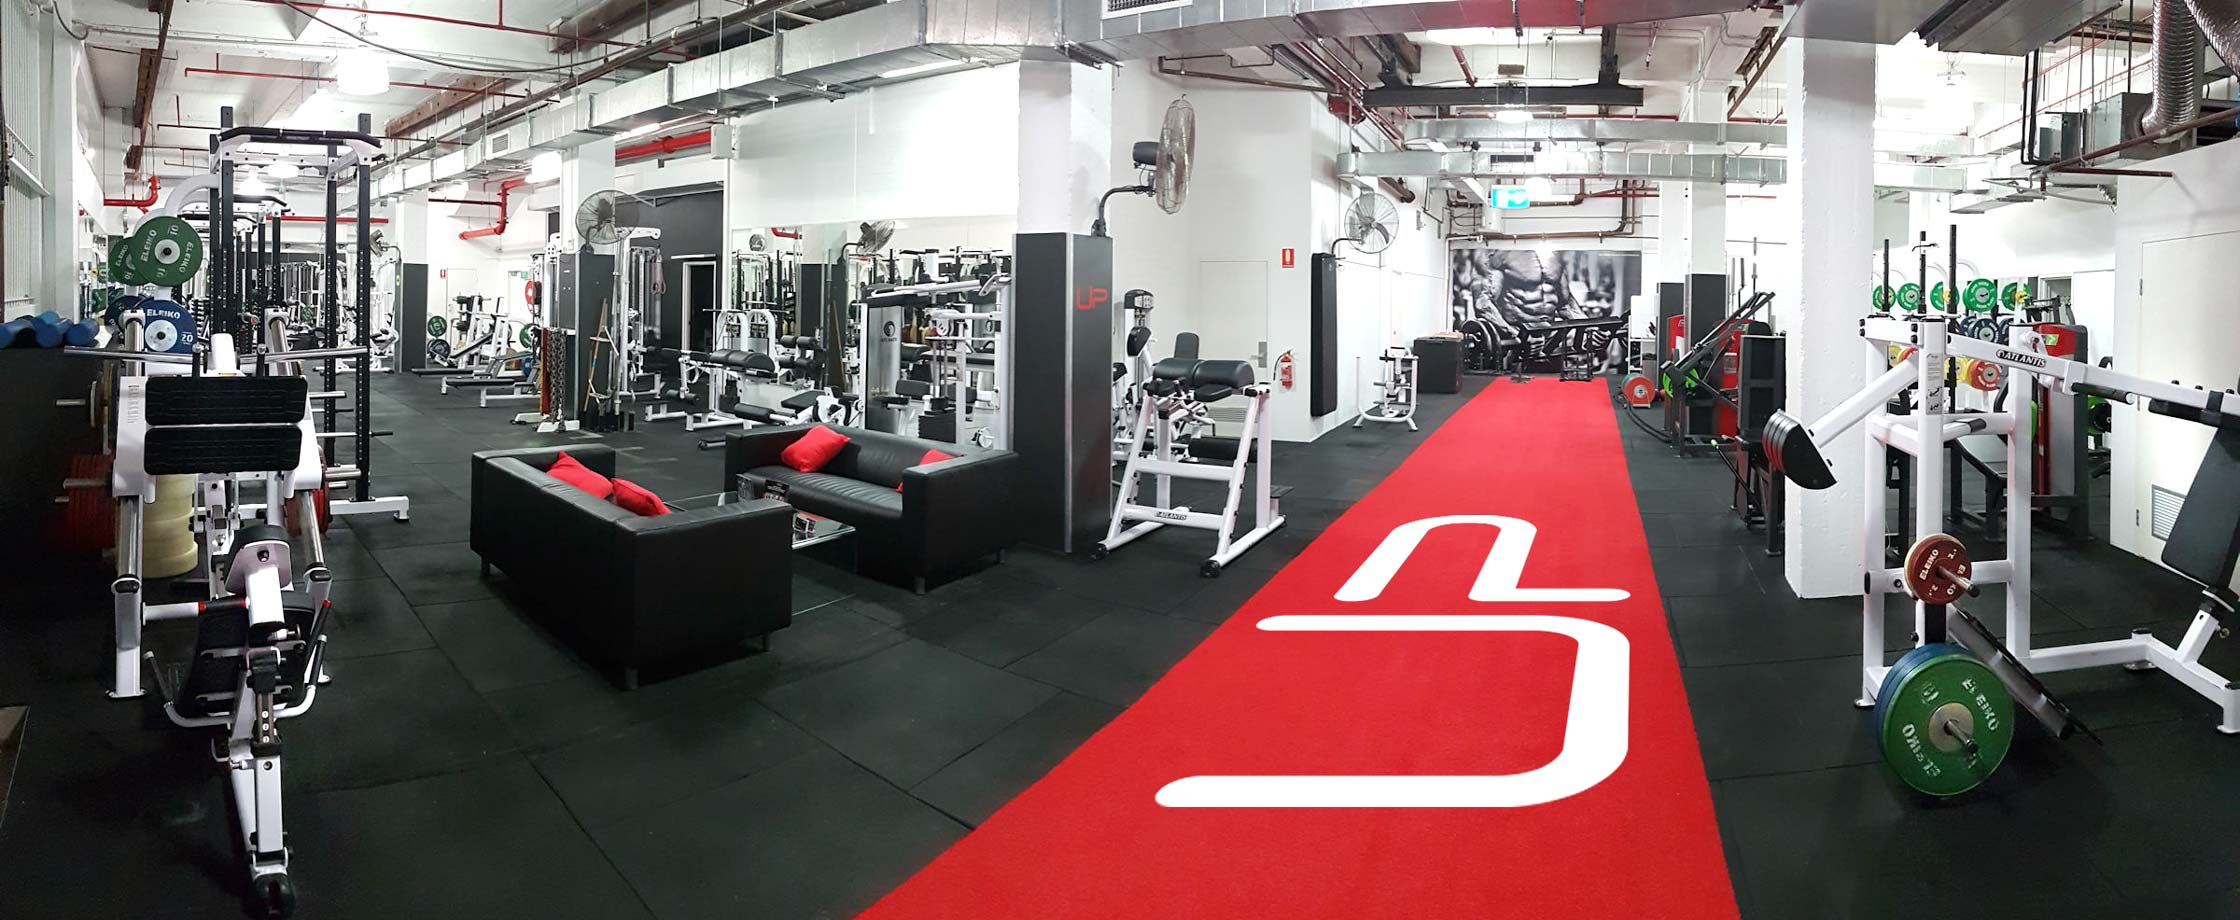 https://assets.upfitness.com/uploads/custom_image_header/mobile_image/7/UP_Sydney_gym_mobile.jpg